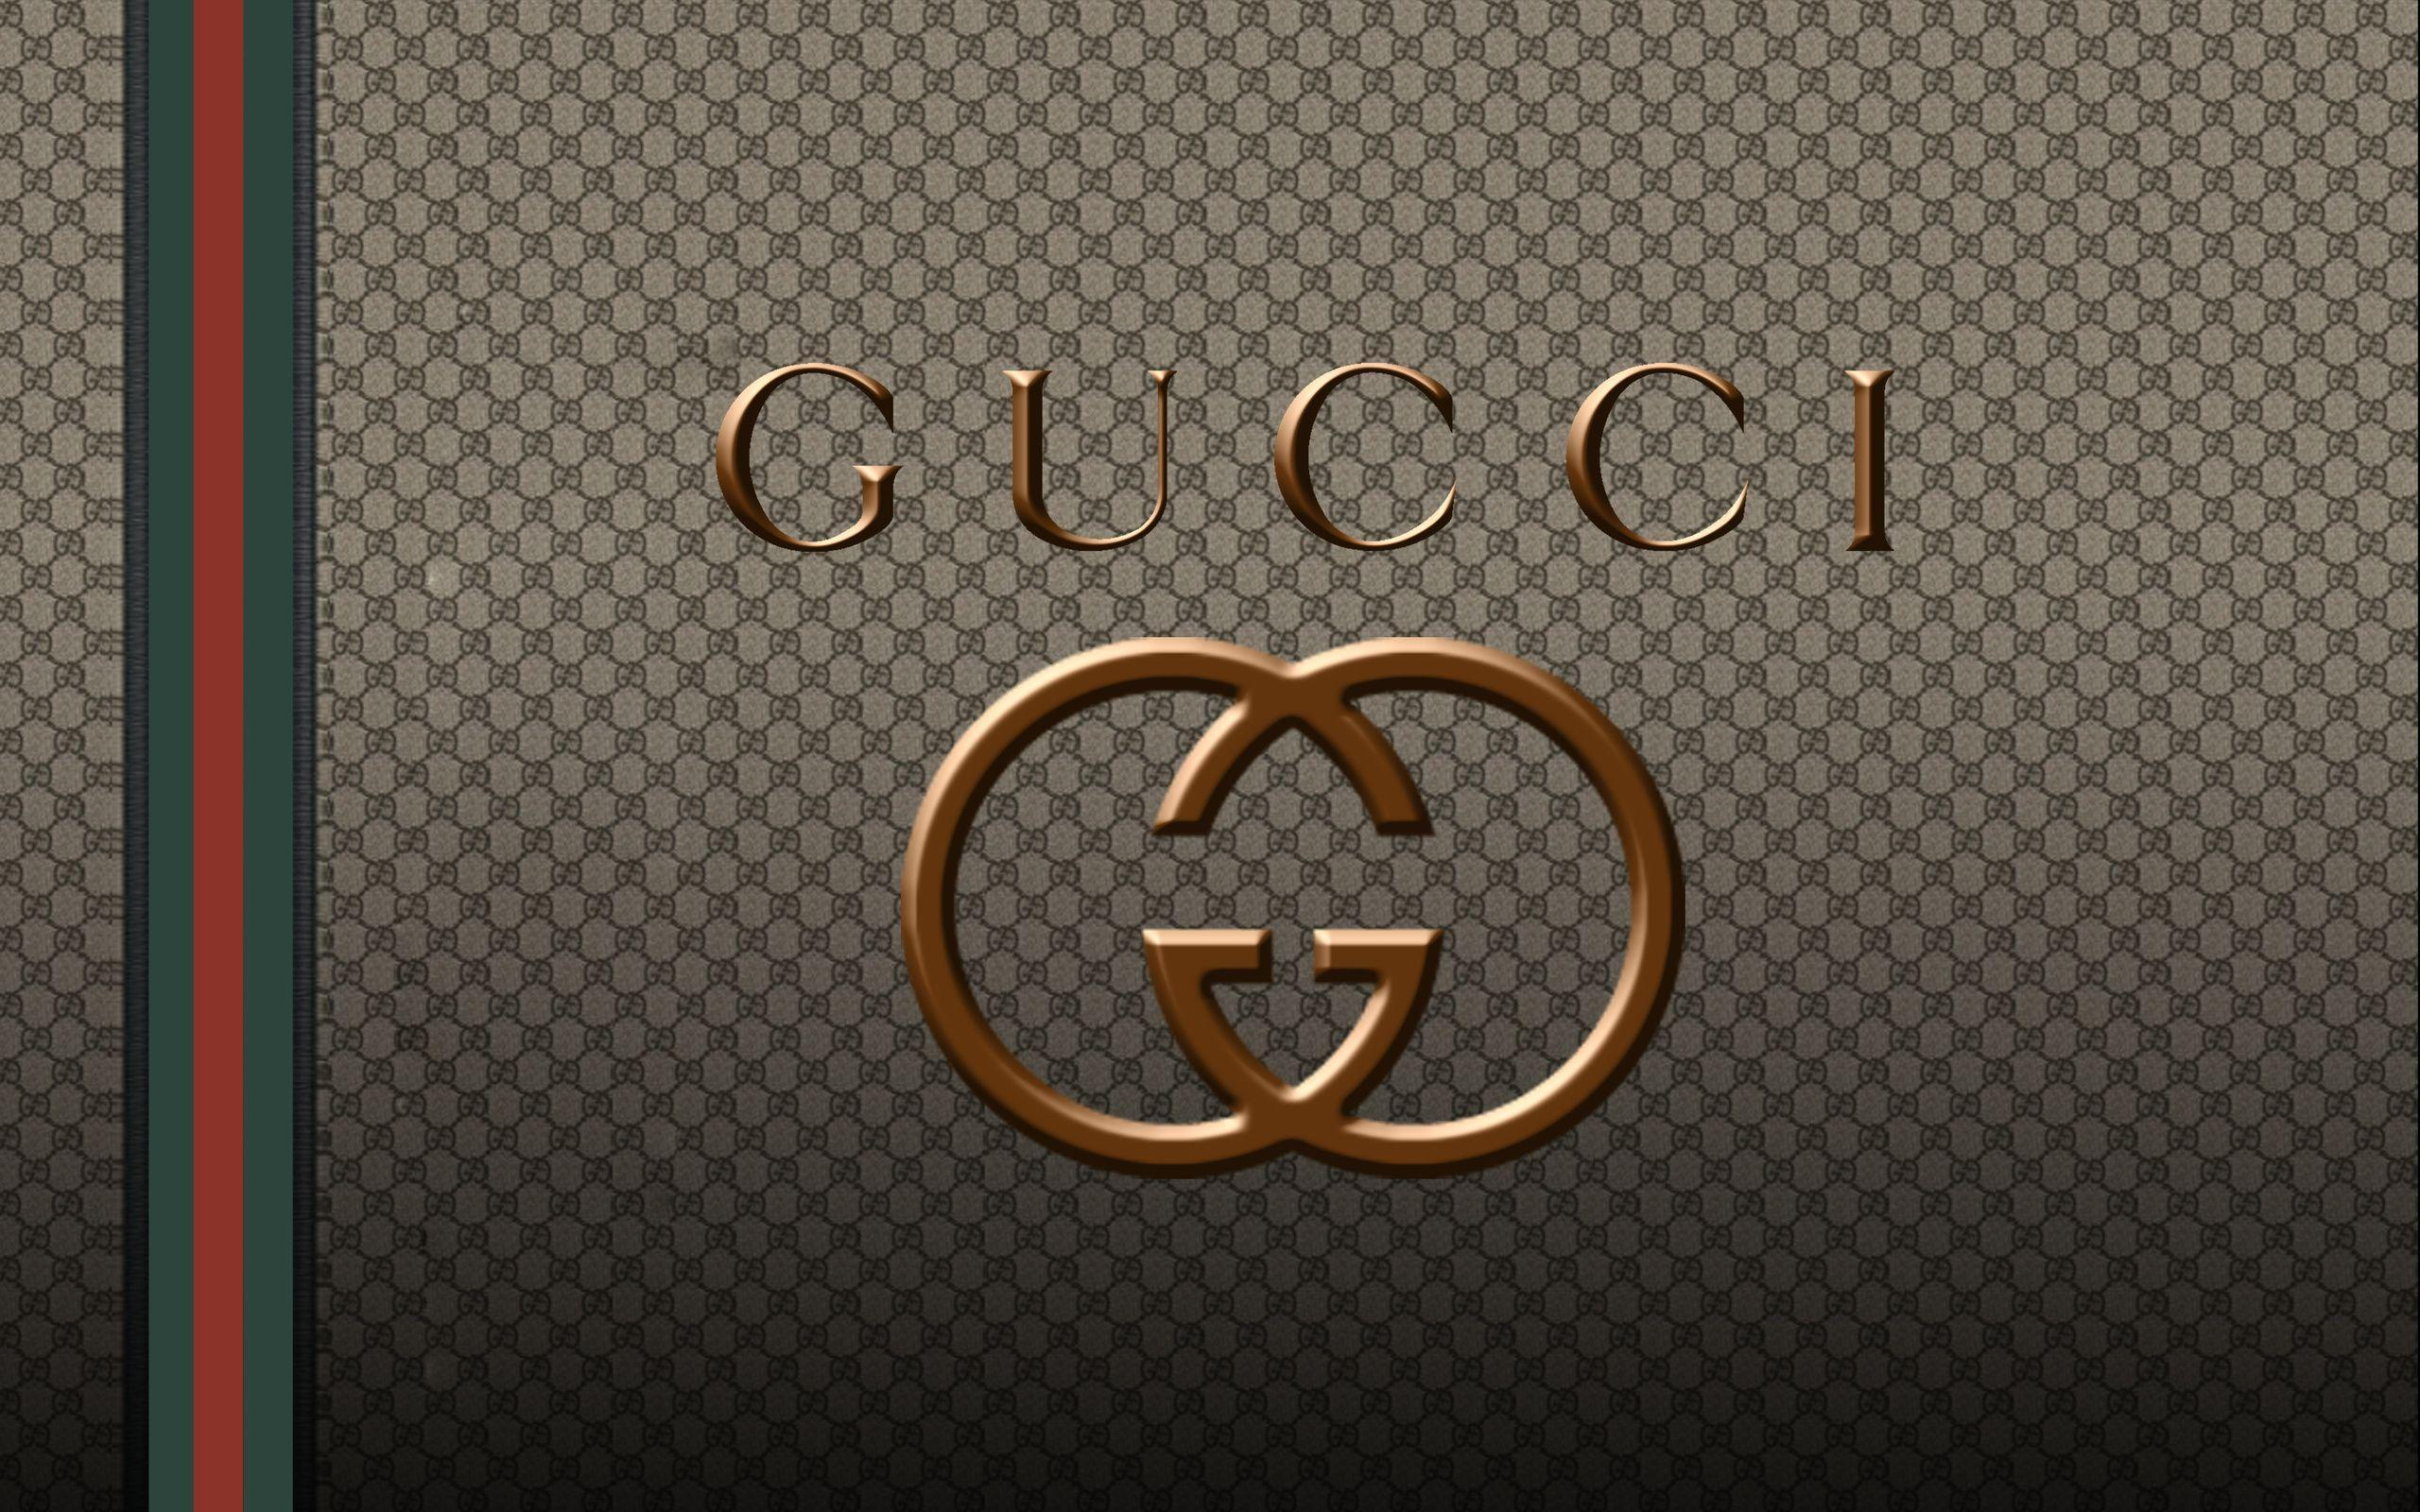 Gucci Wallpapers Wallpaper Cave HD Wallpapers Download Free Images Wallpaper [1000image.com]